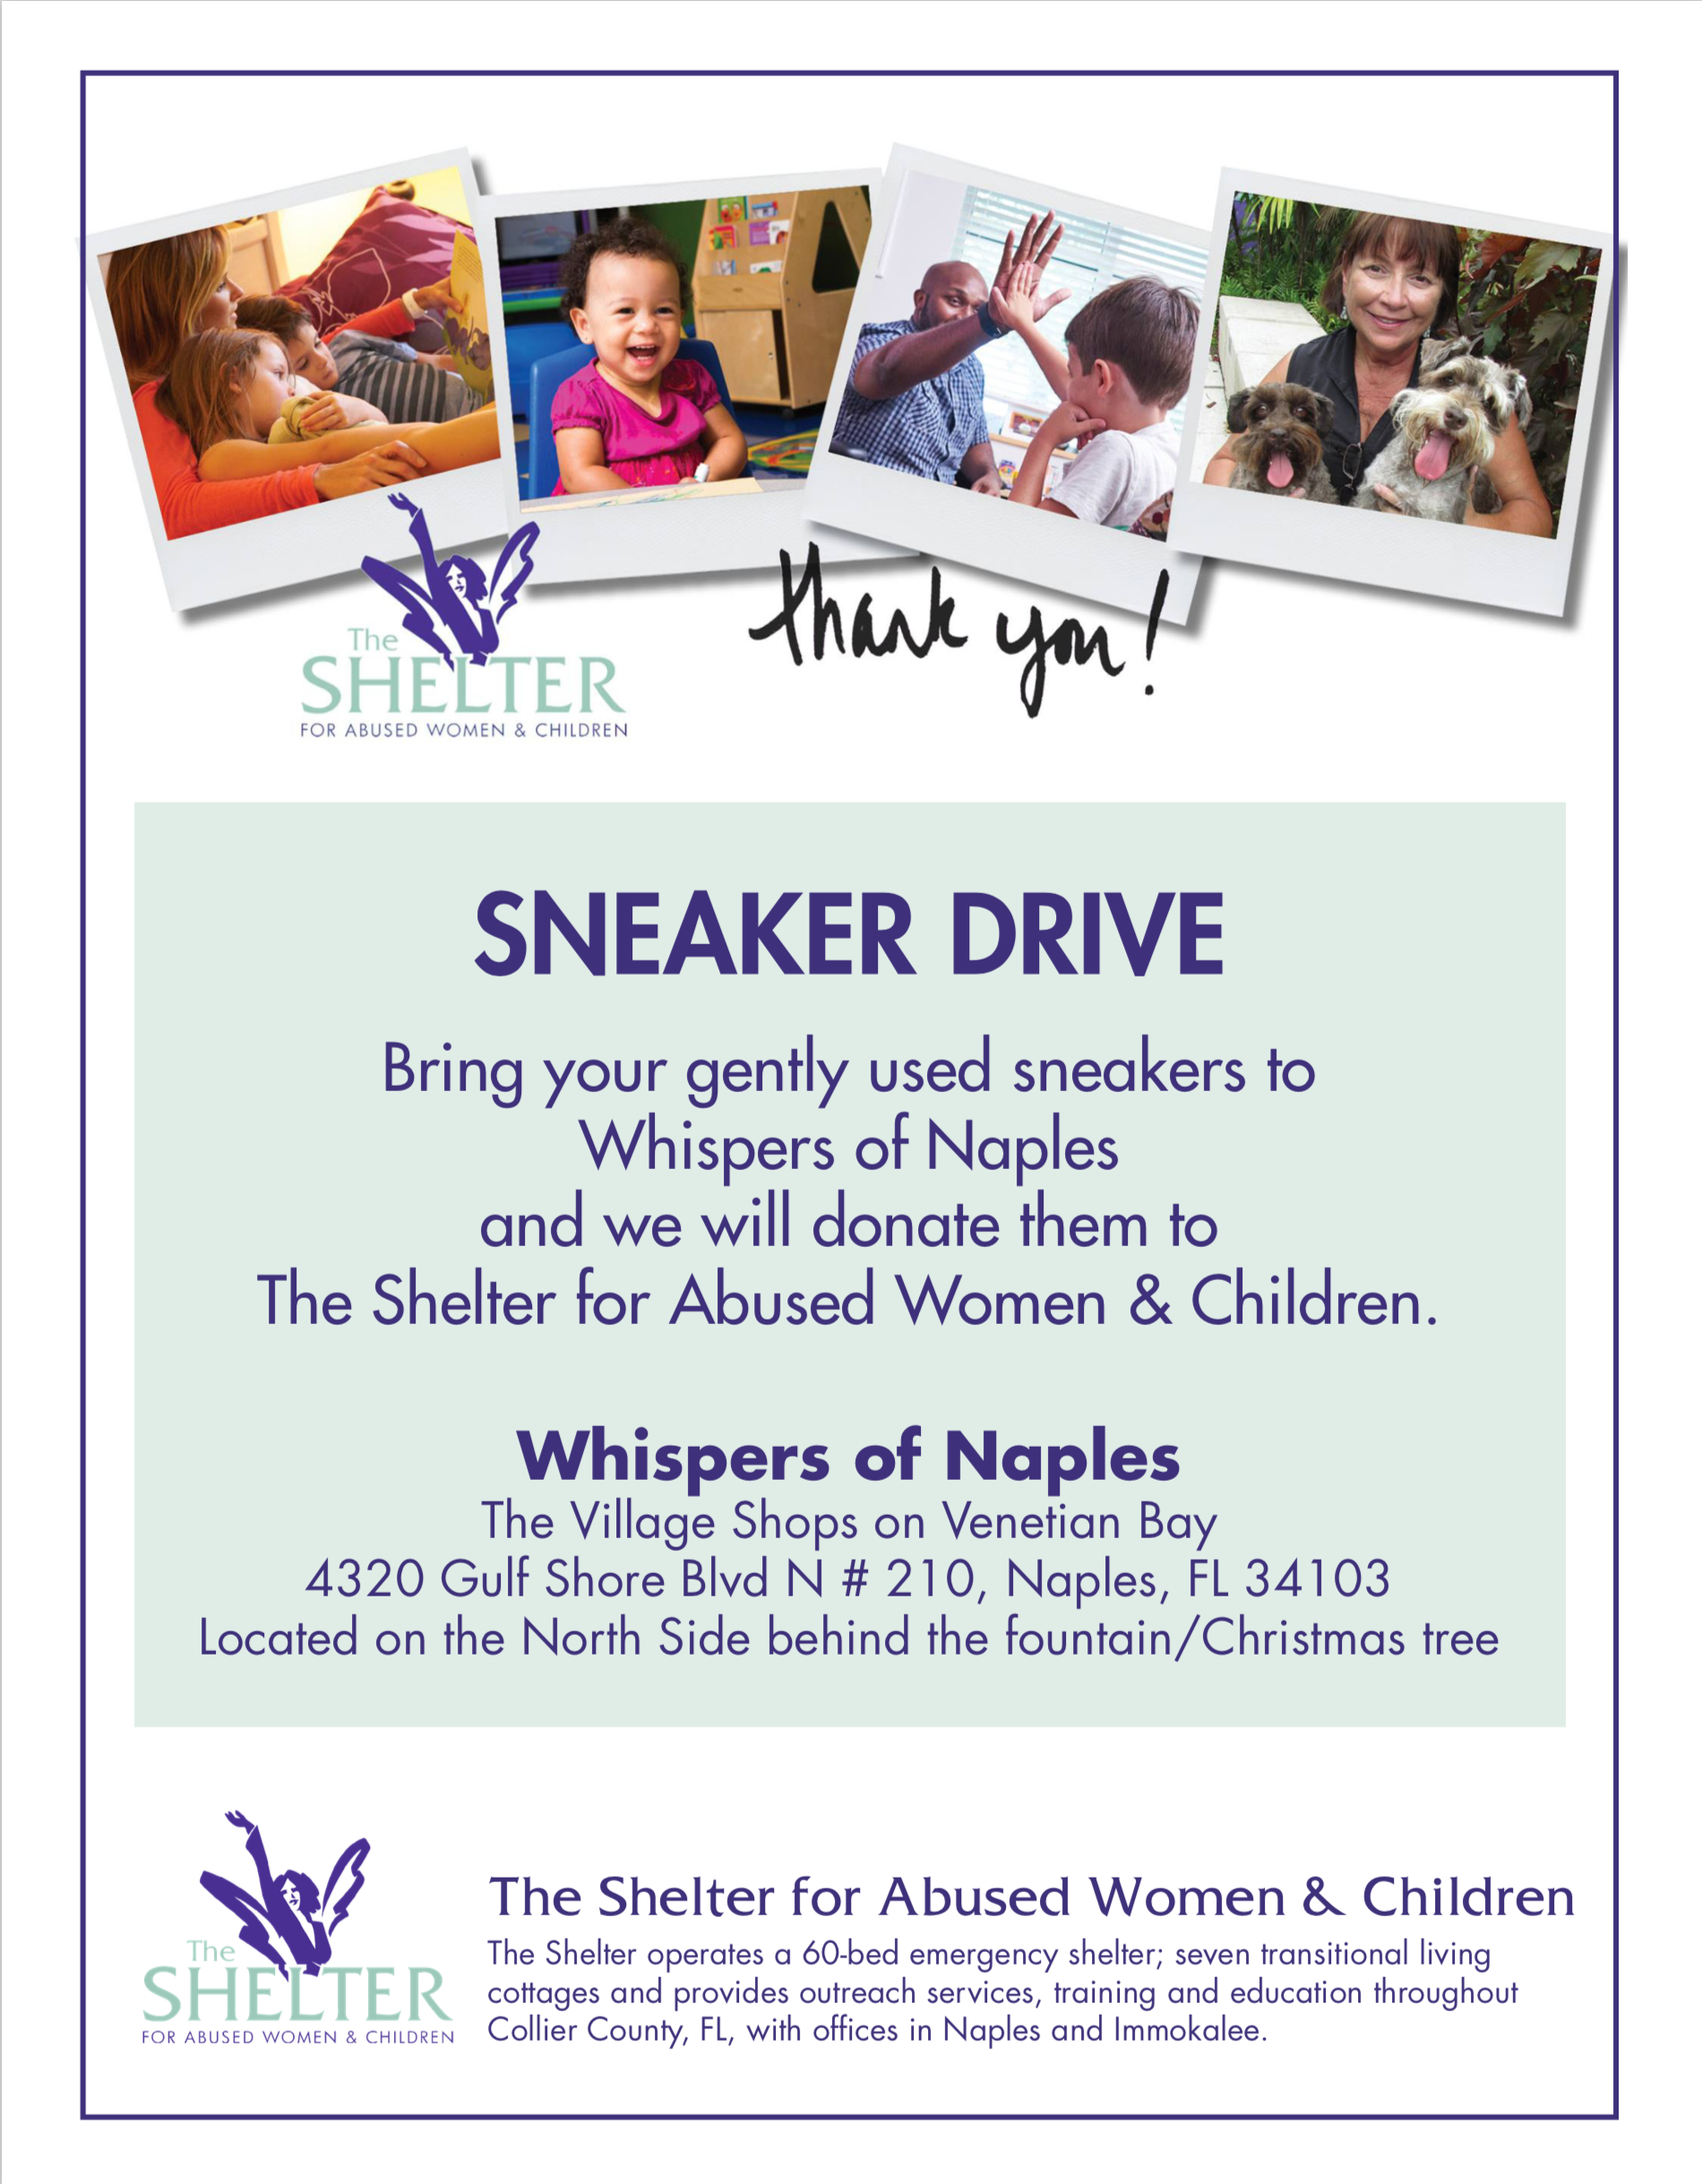 Whisper's of Naples Sneaker Drive